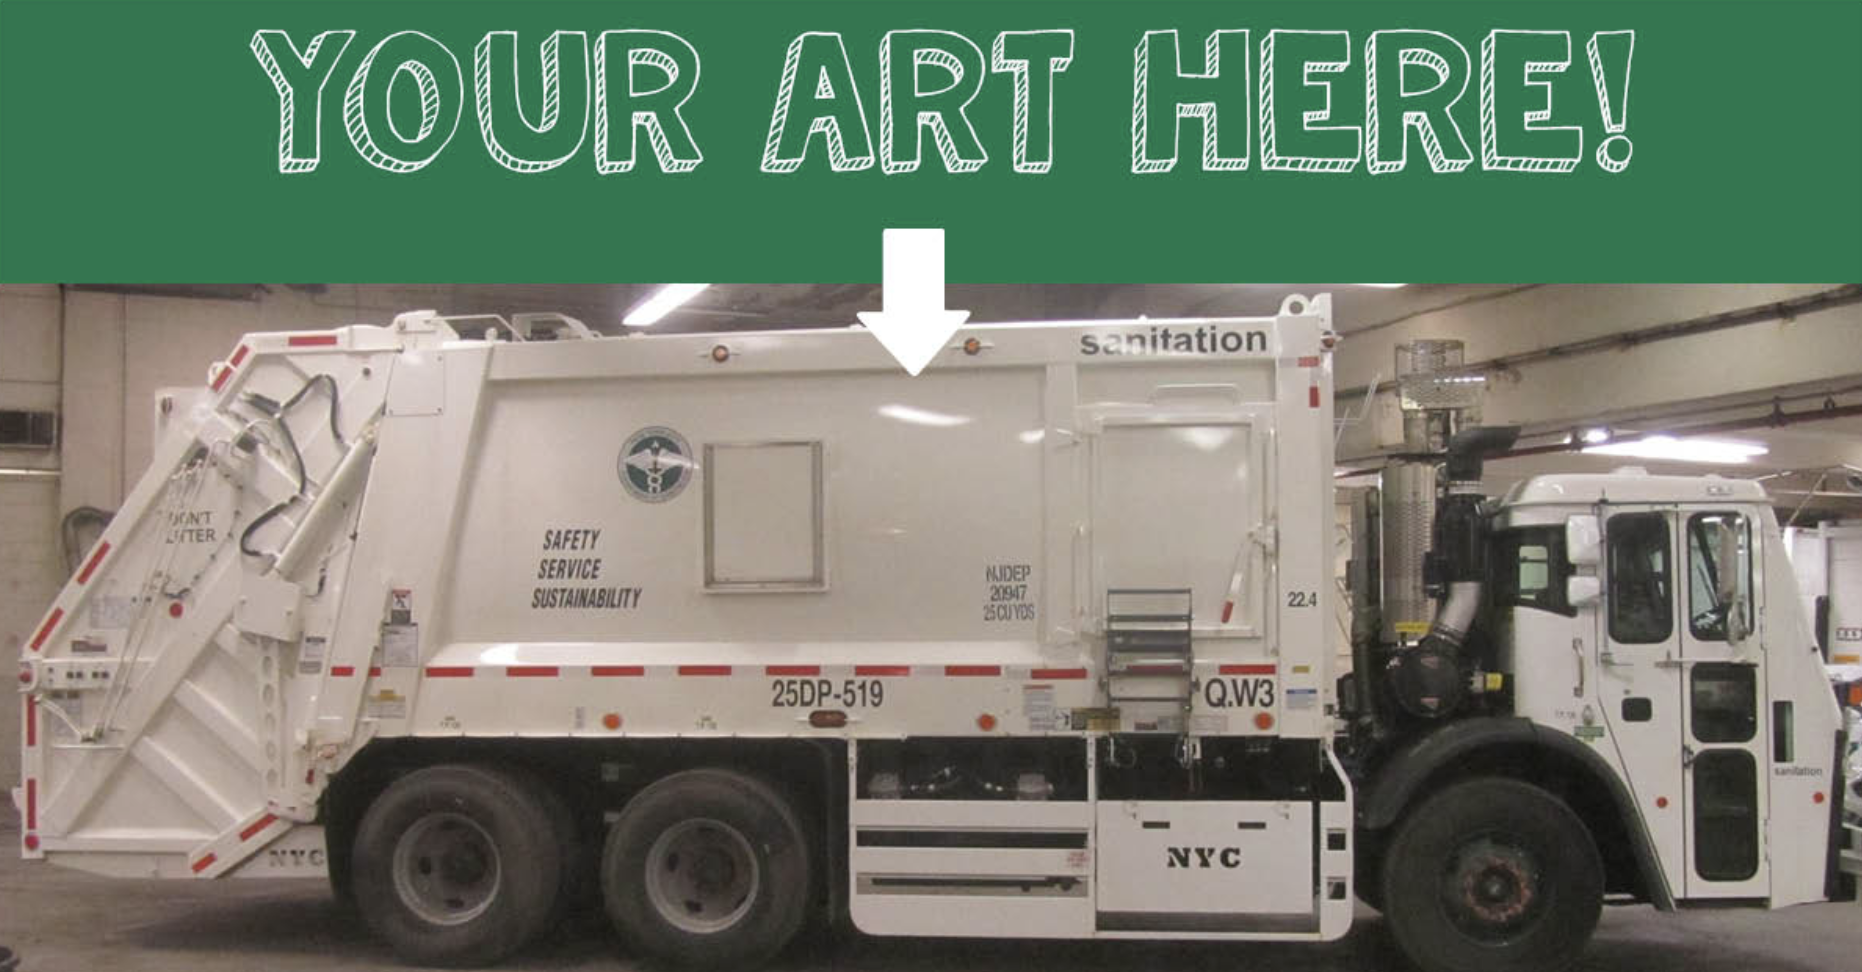 The Department of Sanitation is seeking artists to turn their garbage trucks into works of art. Photo courtesy of DSNY